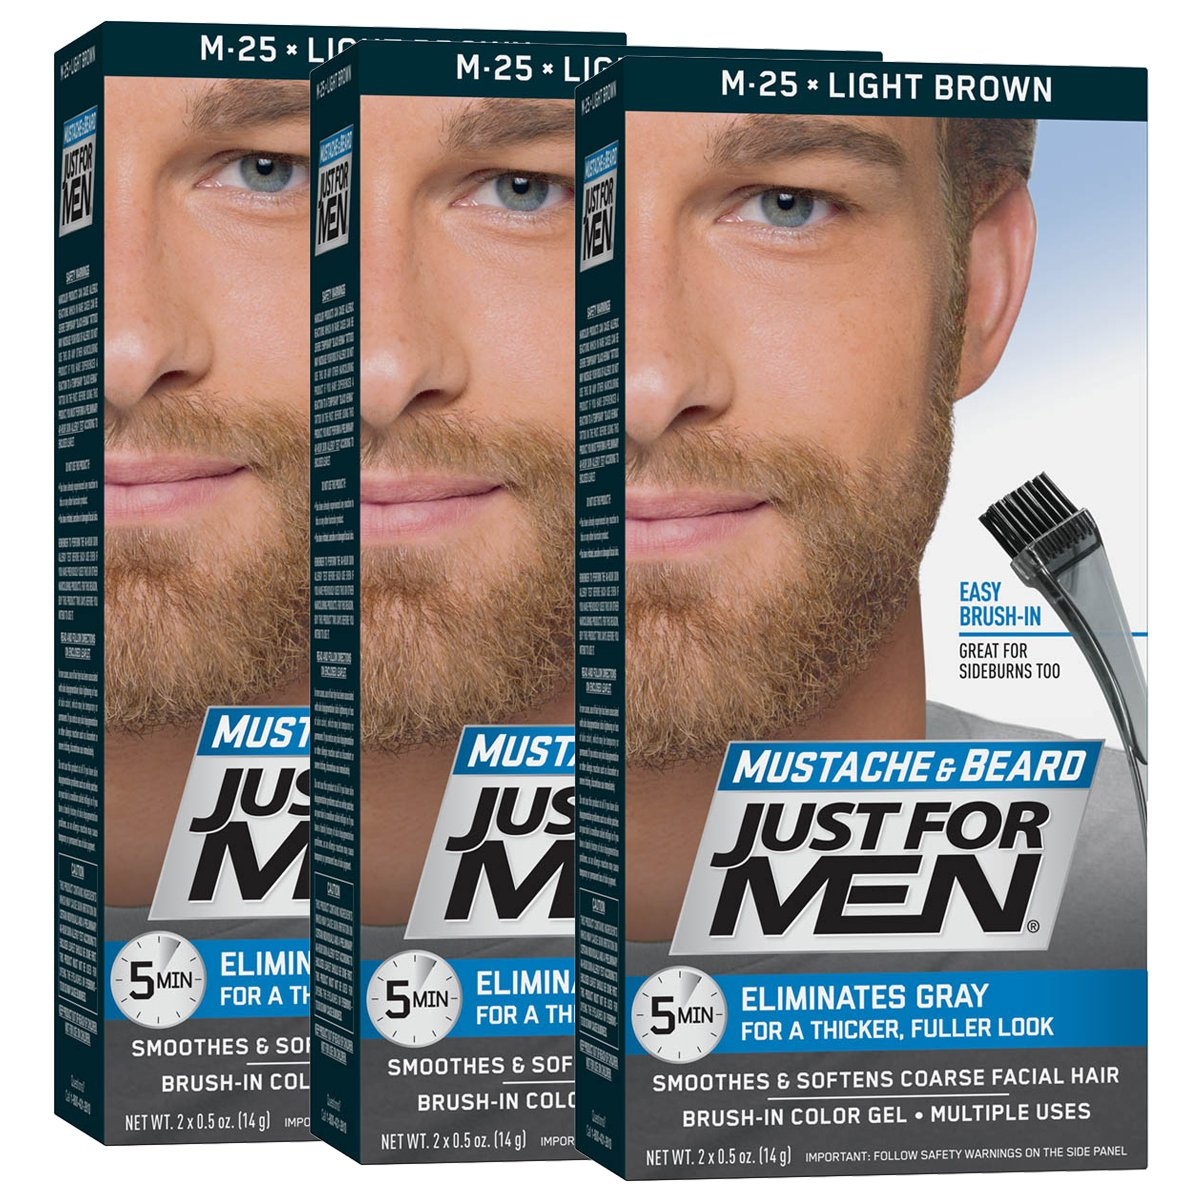 Just For Men Mustache & Beard, Light Brown (Pack of 3) thomaswi